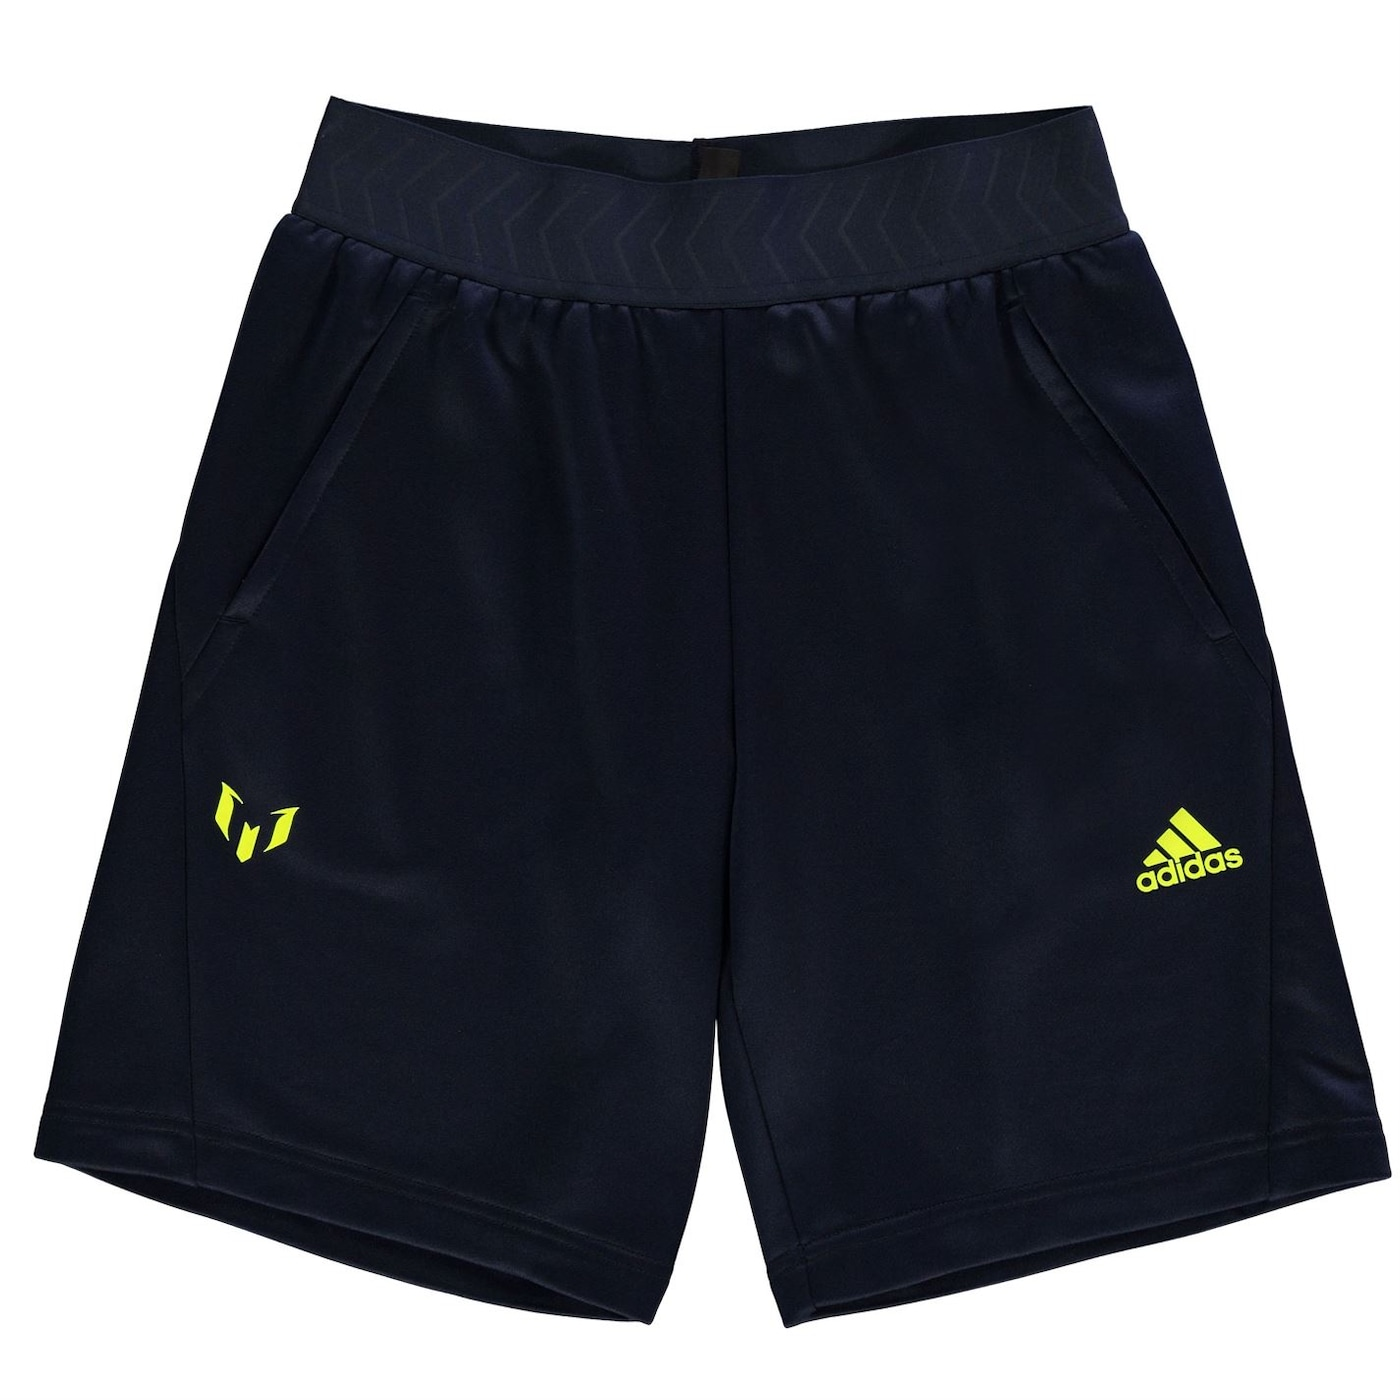 Adidas Messi Football Shorts Junior Boys